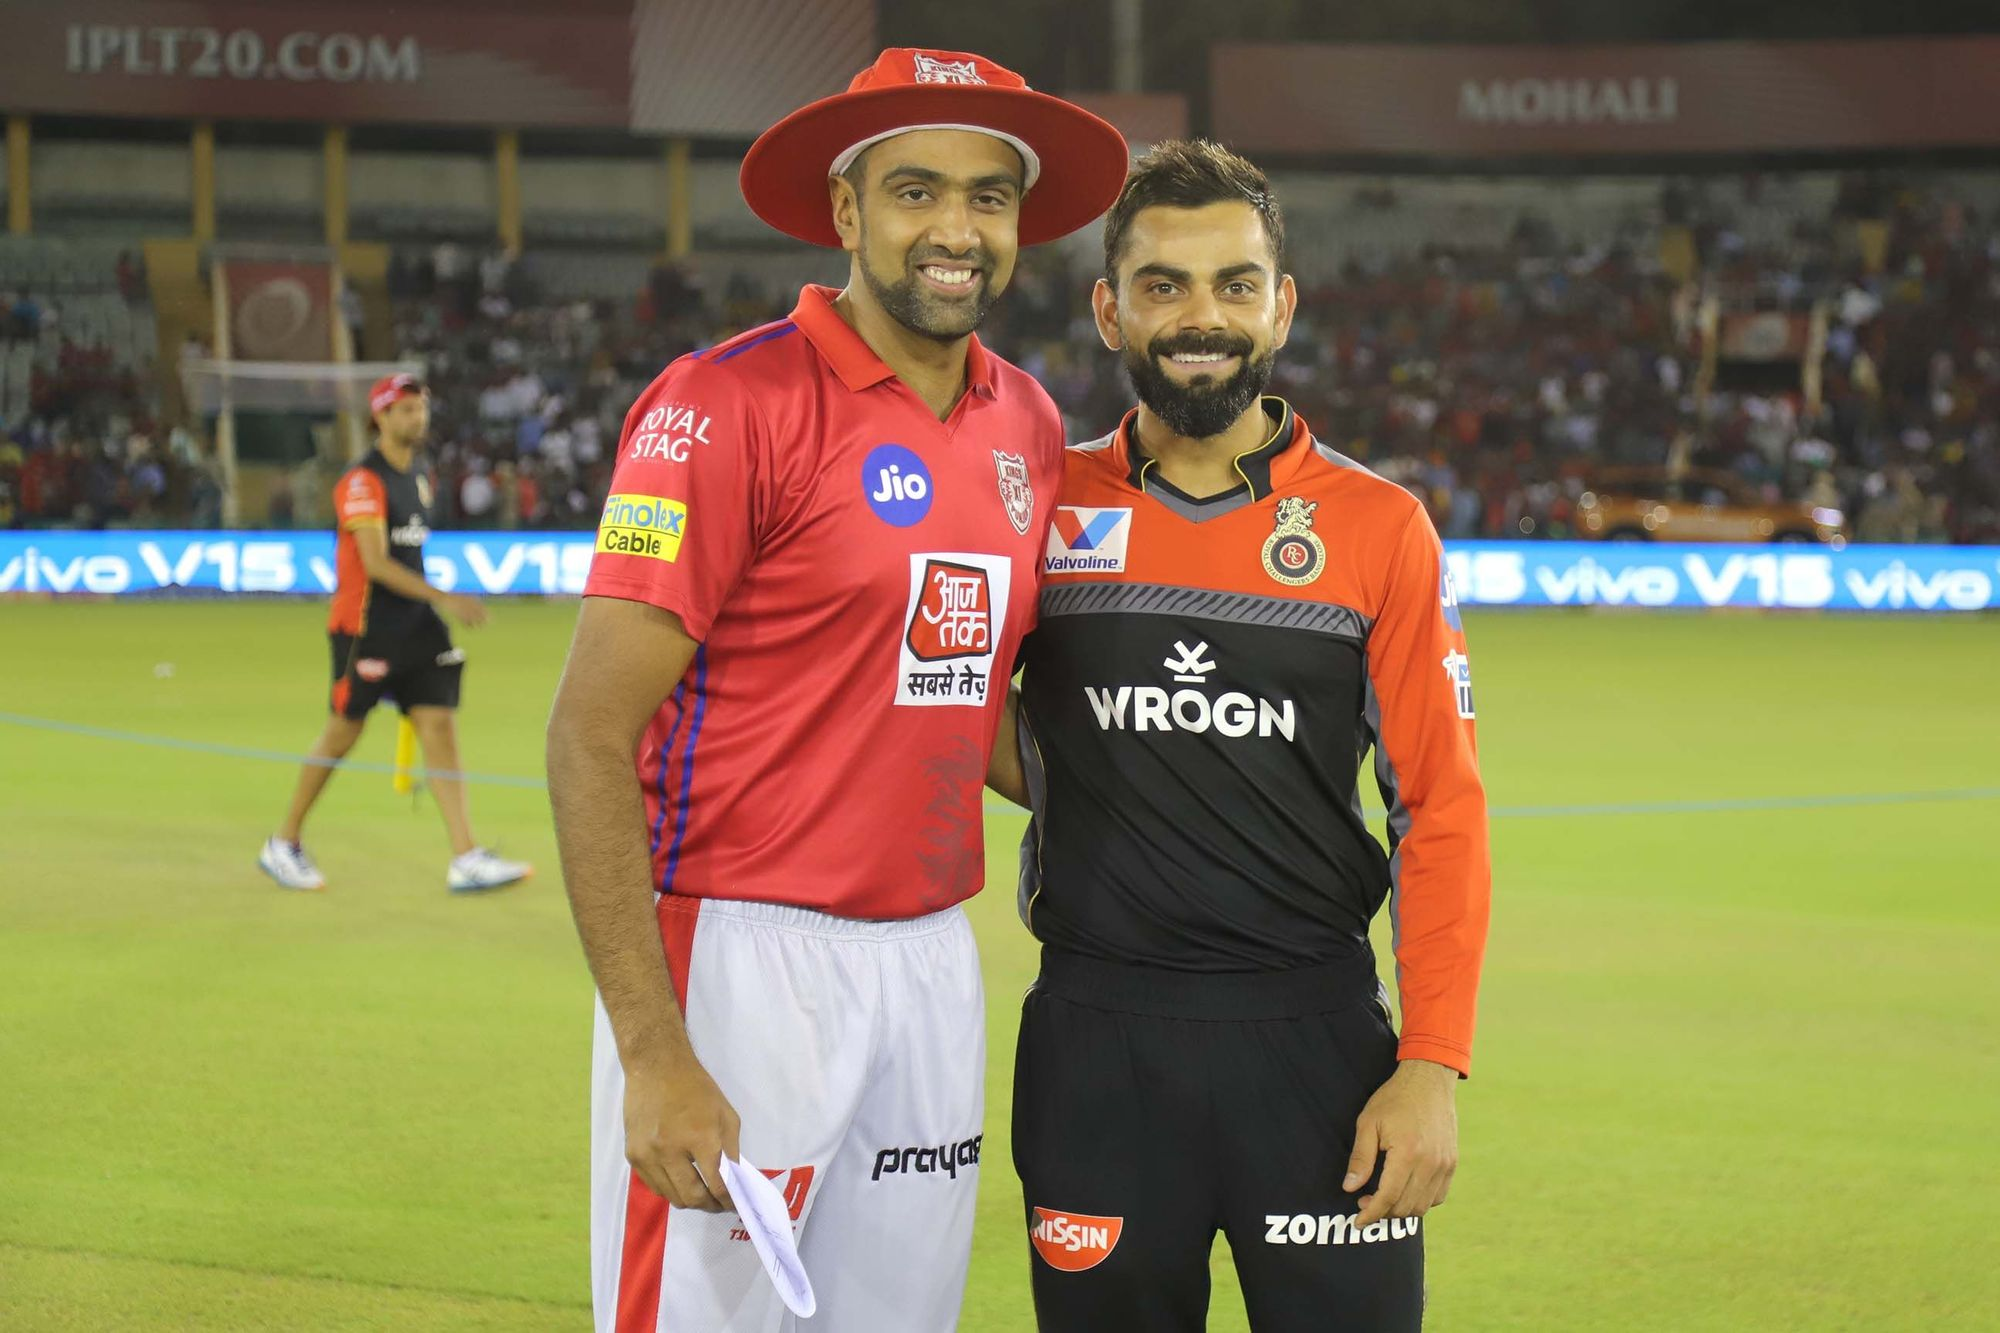 RCB, KXIP, Kings XI Punjab, Royal Challengers Bangalore, IPL, 2019, Virat Kohli, NewsMobile, Sports, Cricket, Mobile, News India